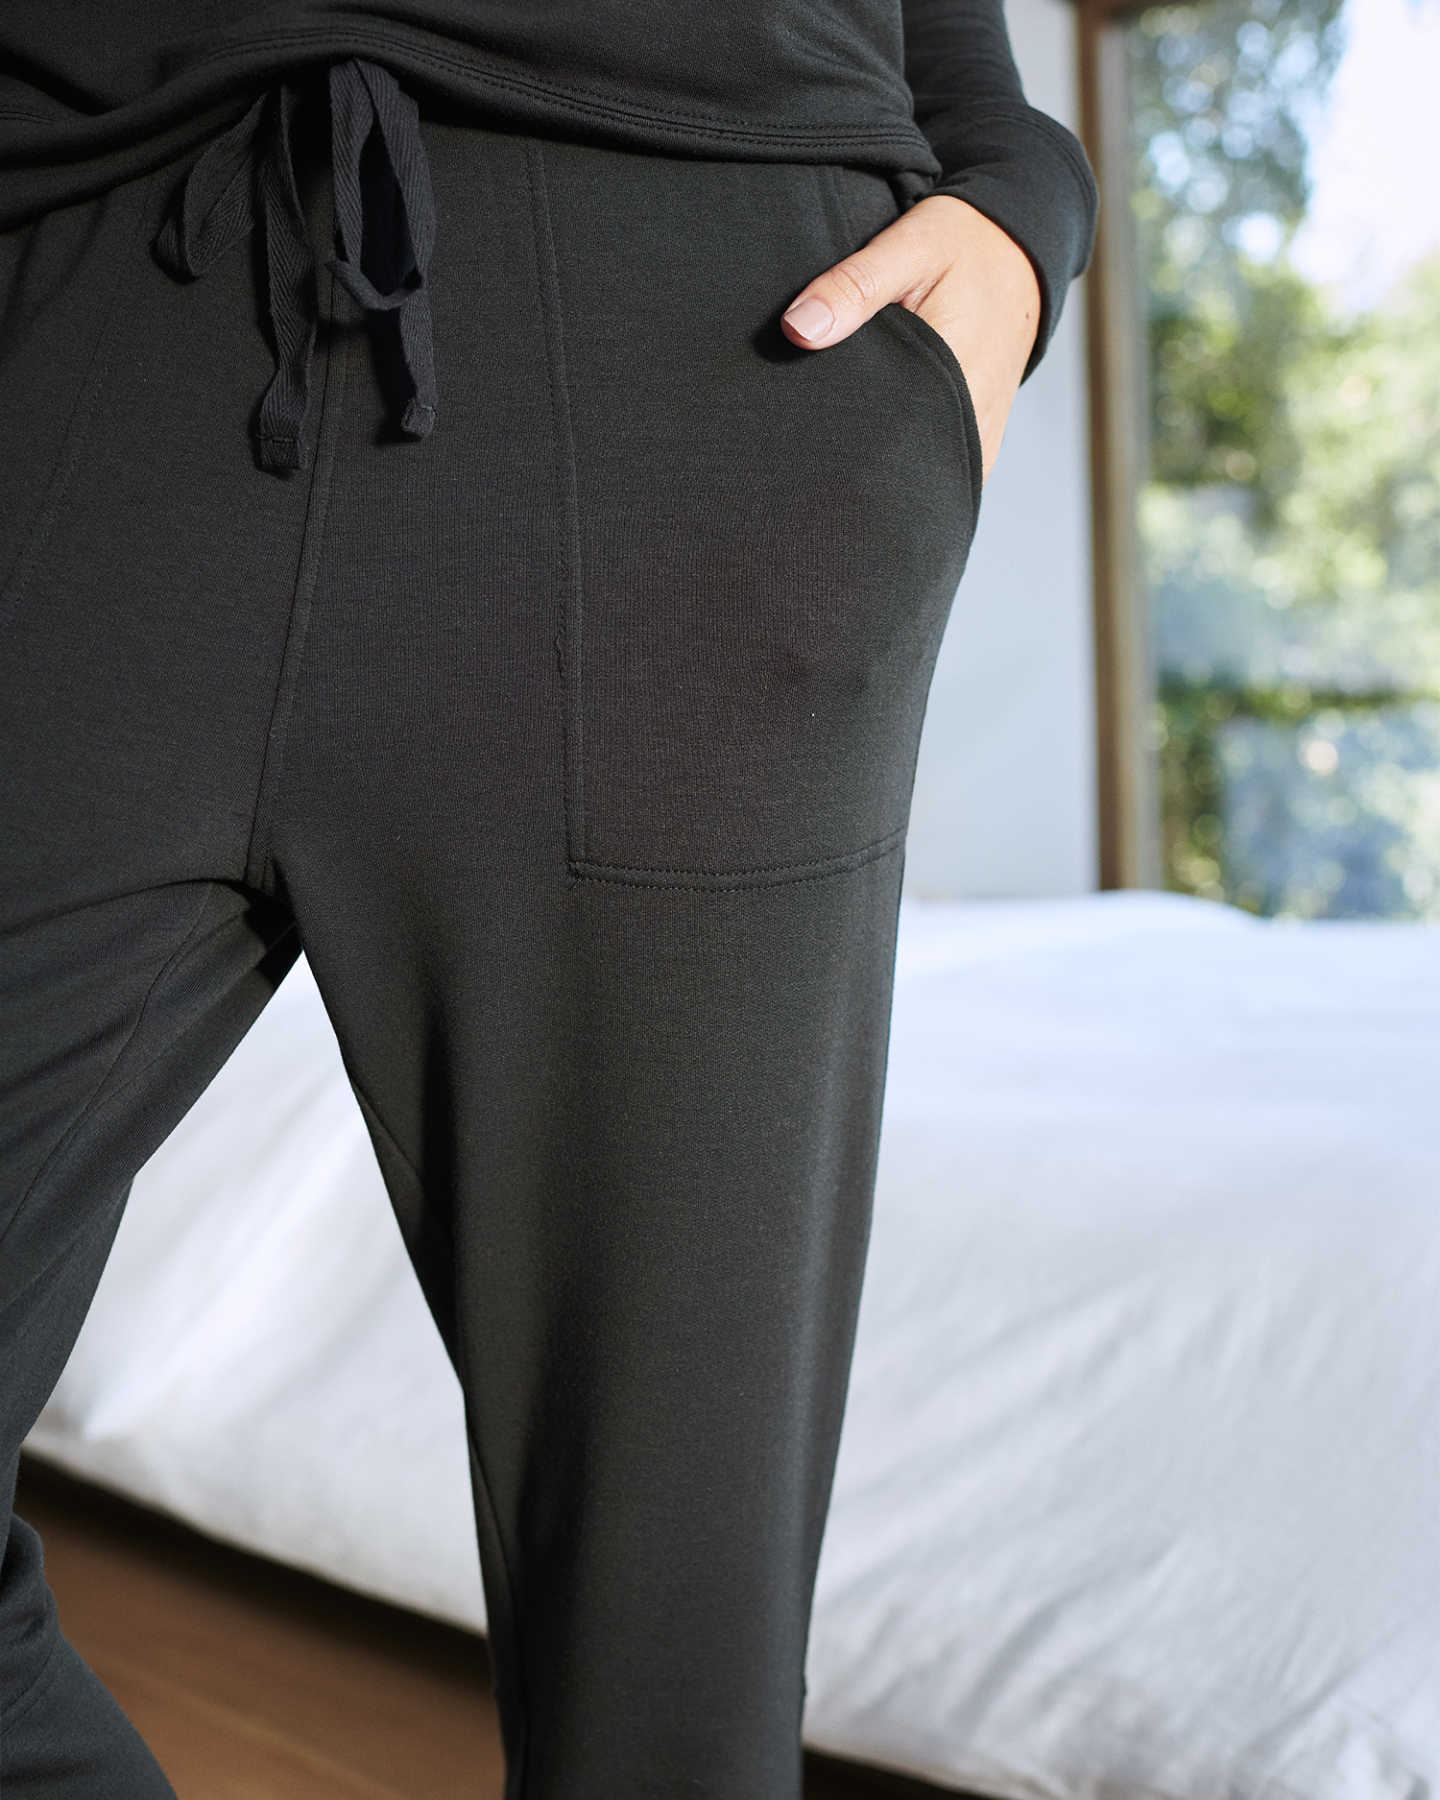 SuperSoft Fleece Pants - Black - 3